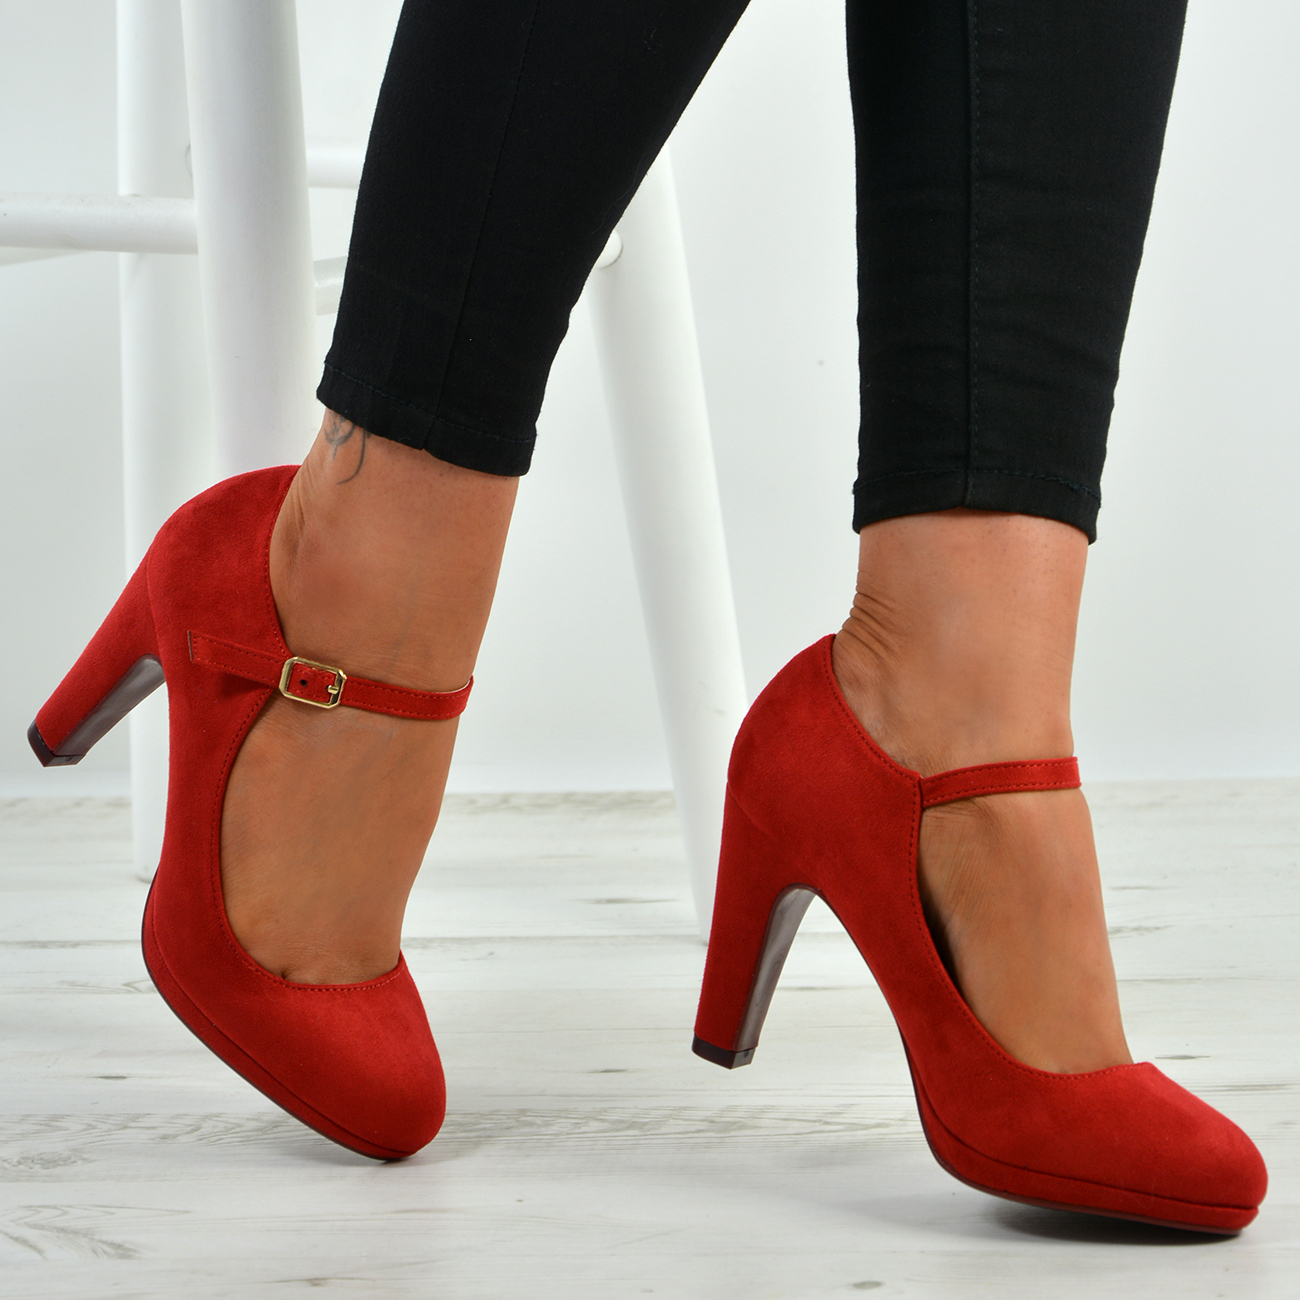 Find great deals on eBay for womens high heels. Shop with confidence.